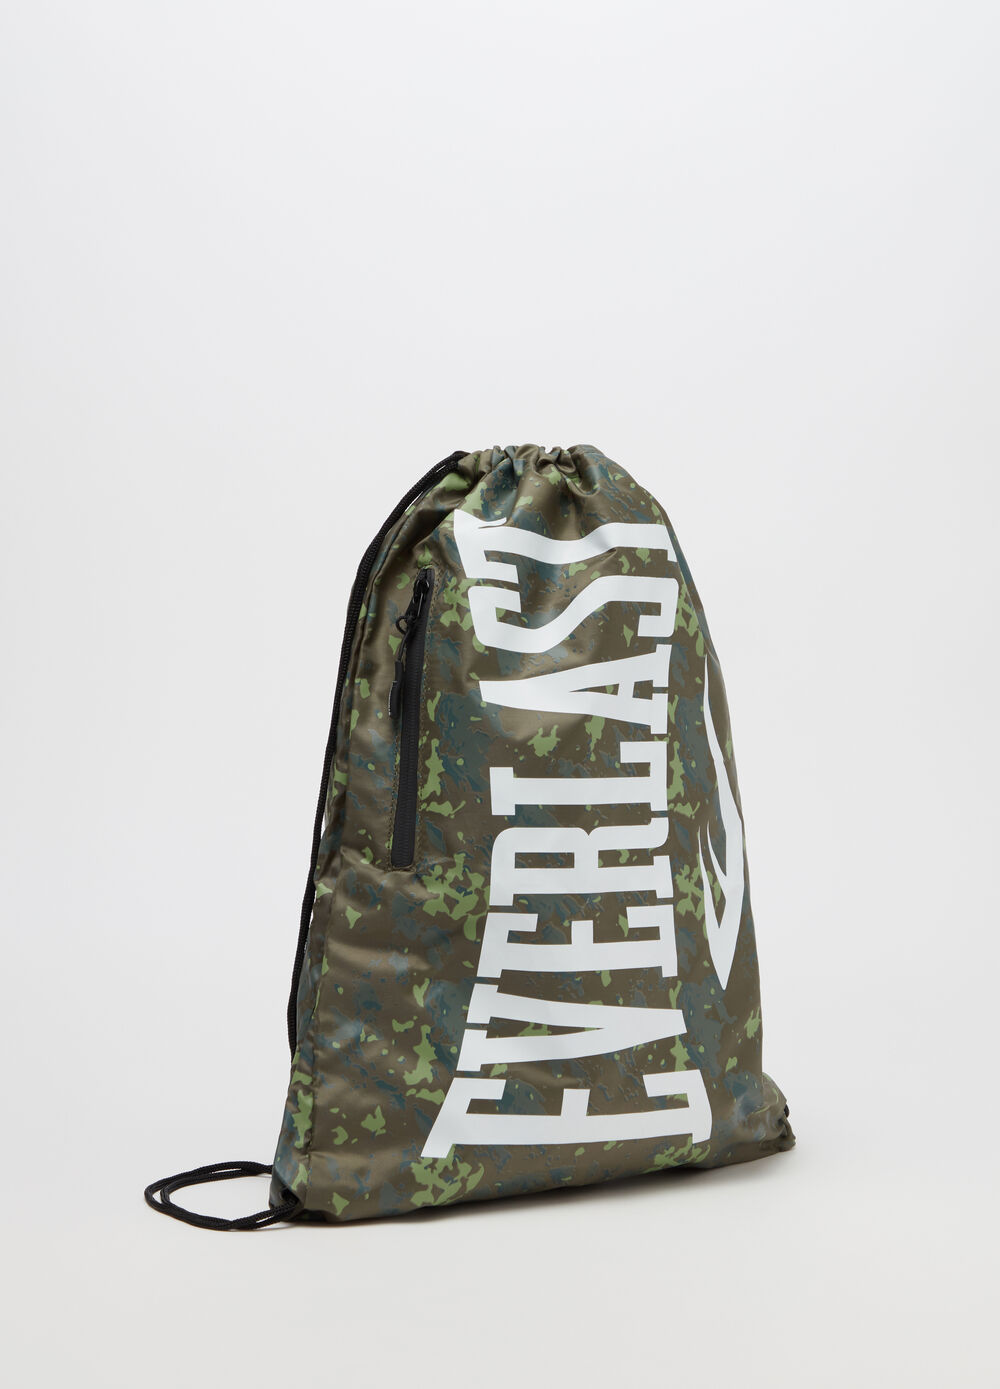 Everlast bag with drawstring closure